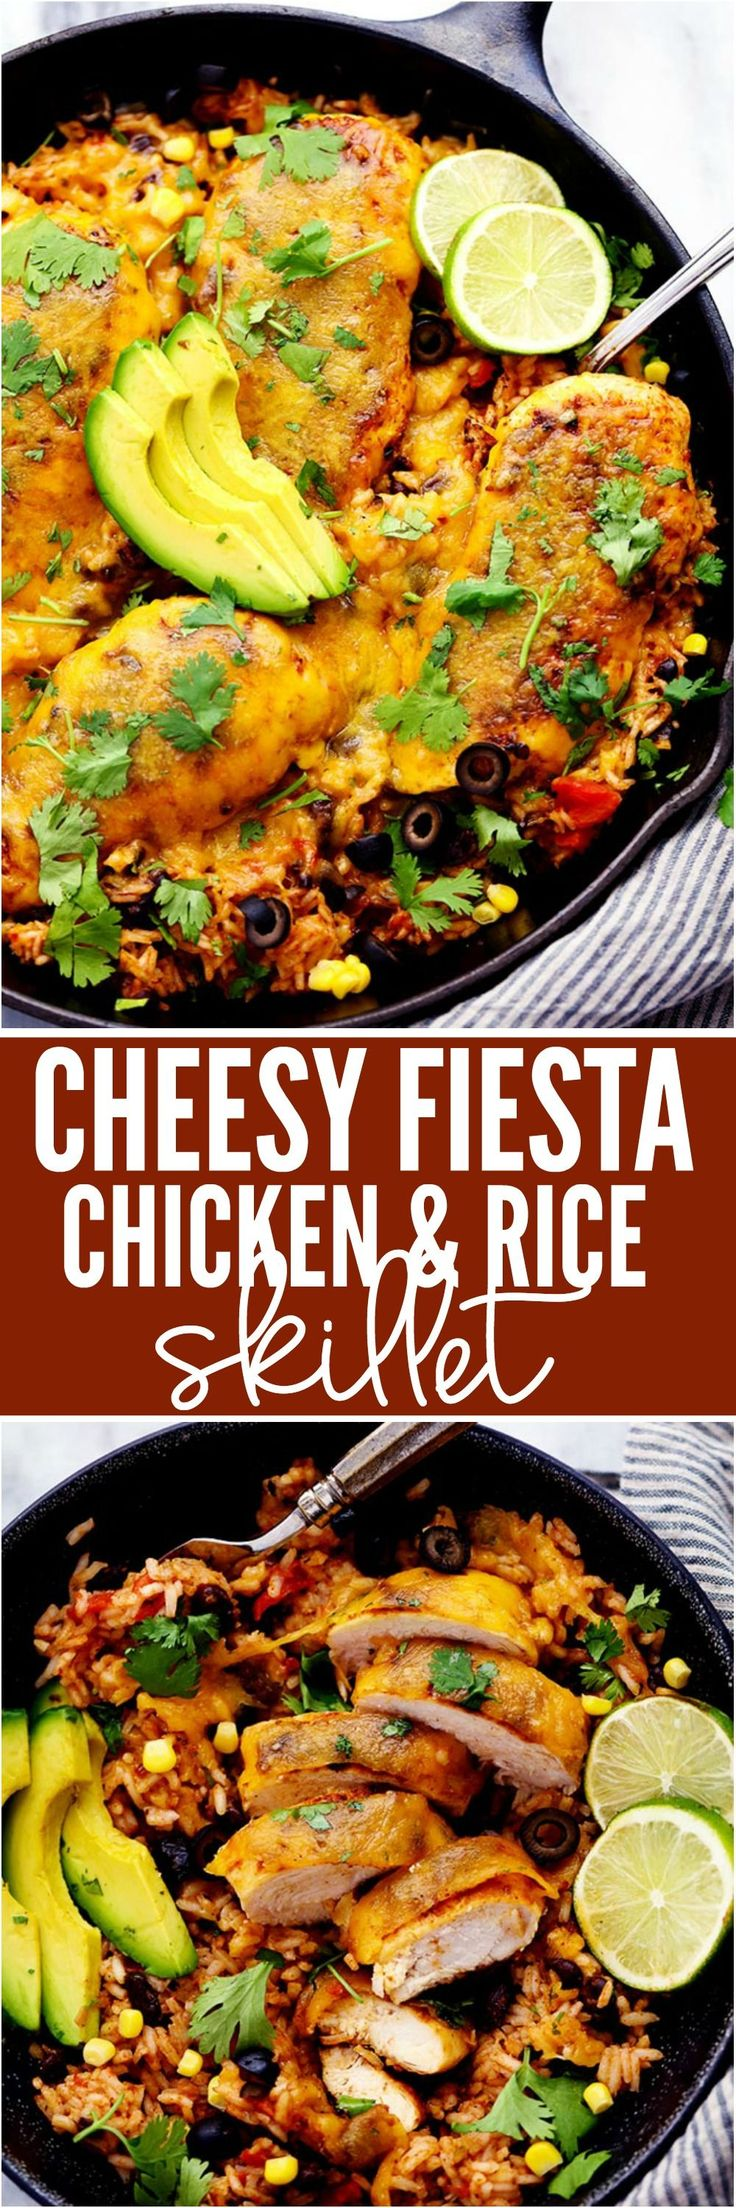 Cheesy Fiesta Chicken and Rice Skillet is made in just one skillet and perfect for busy nights! The rice has wonderful flavor and is filled with black beans, corn, and fire roasted tomatoes. Topped with taco seasoned chicken and smothered in melted cheese this meal will be loved by the entire family!